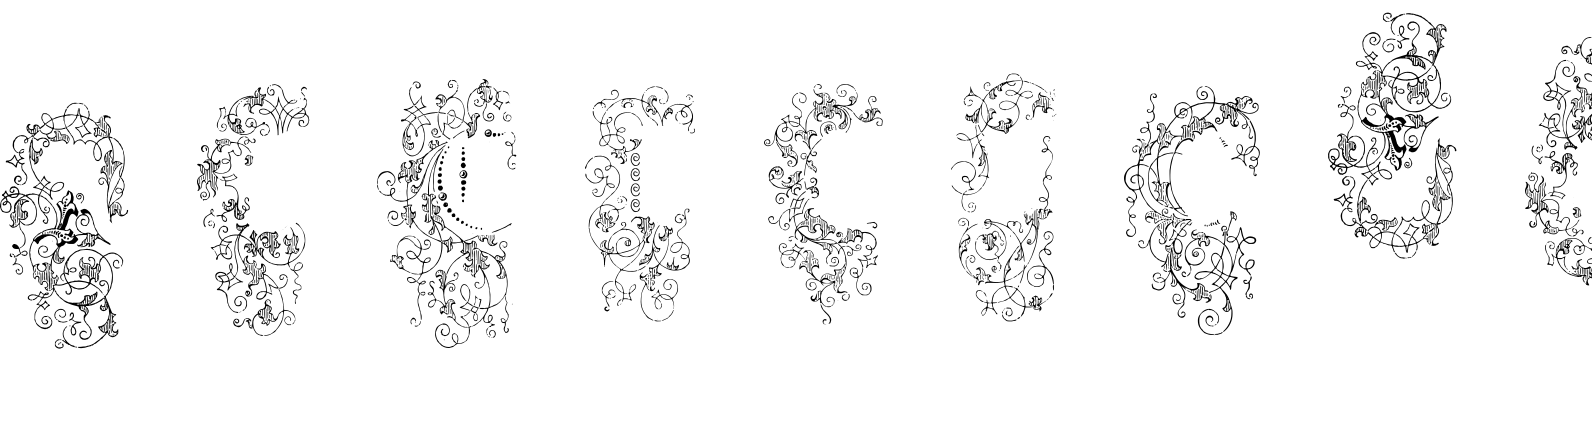 Grave Ornaments Regular Font